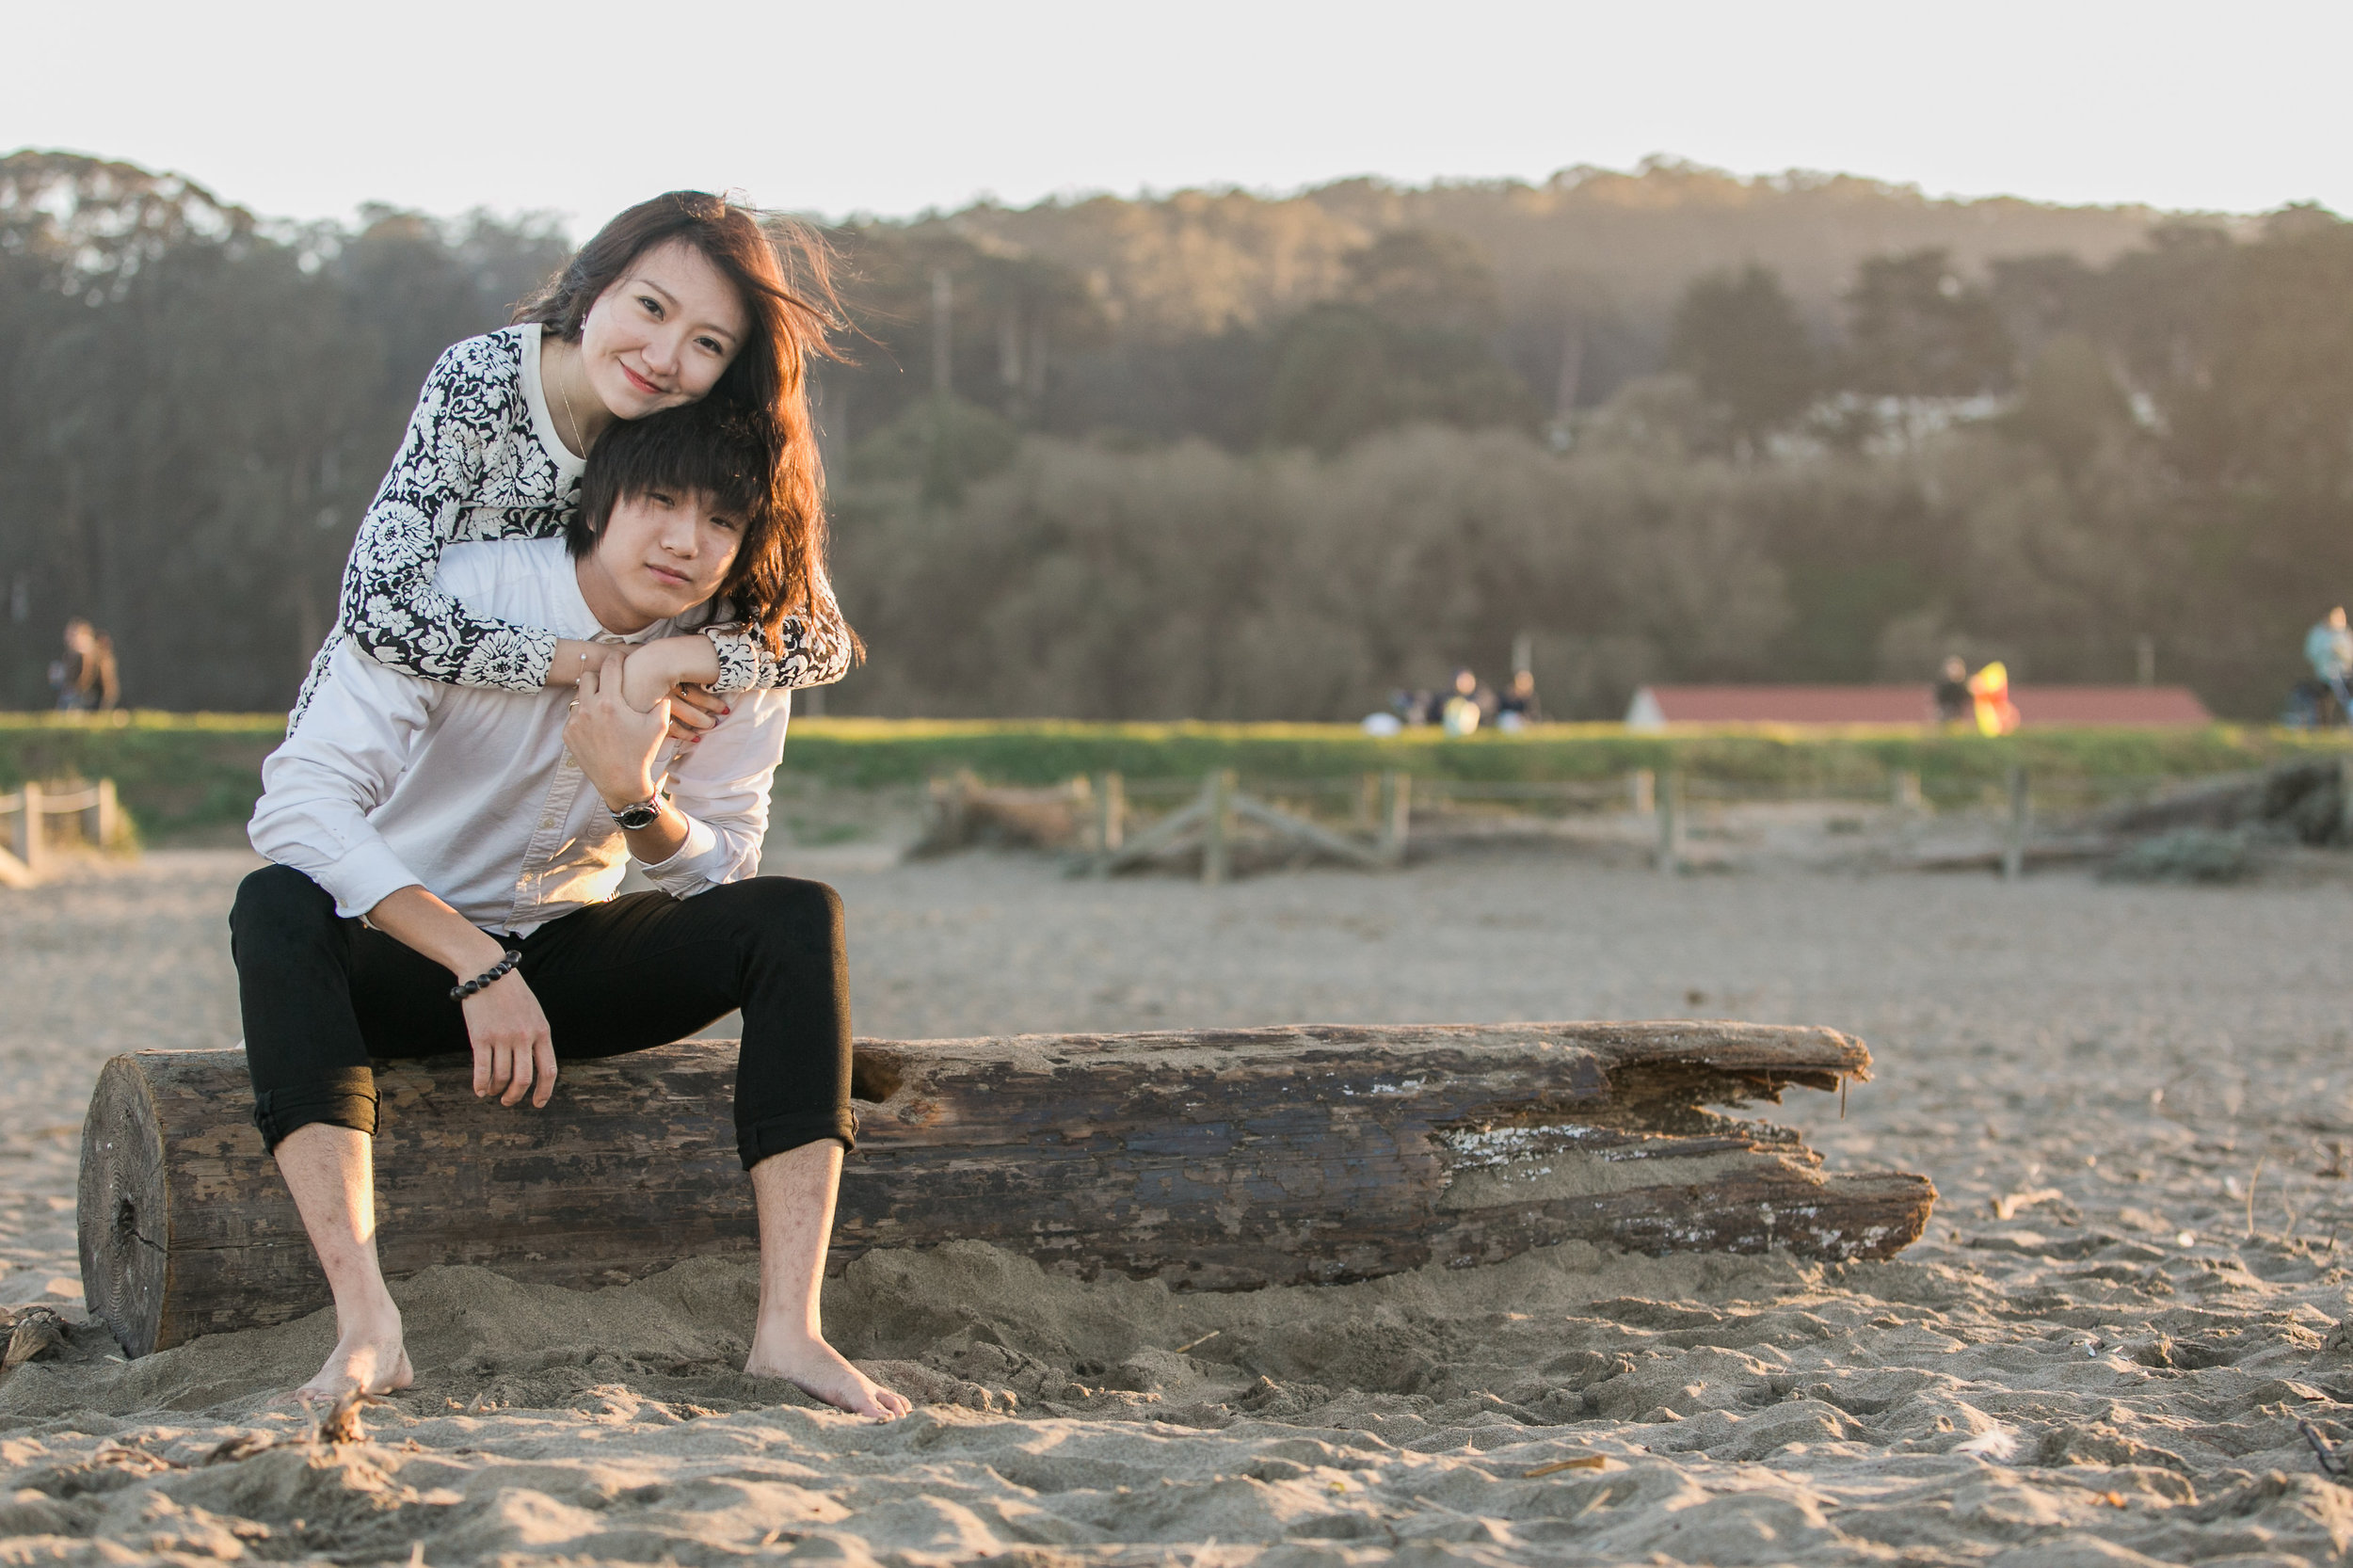 crissy field engagement session david kim photography 4.jpg